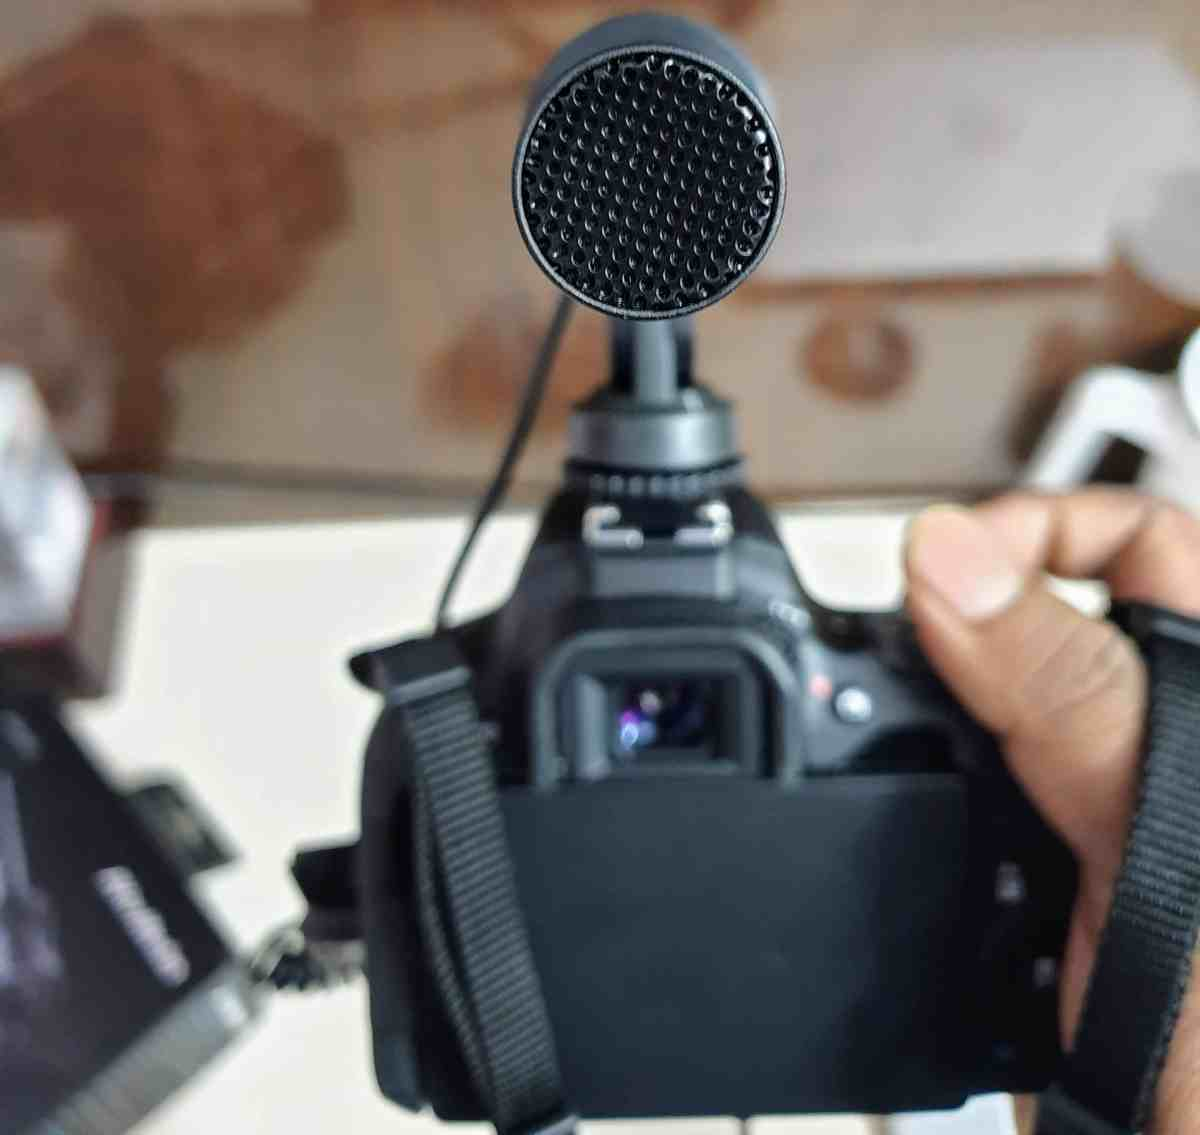 AVerMedia Live Streamer MIC 133 Review - A Must-Have Accessory for Content Creators! - 4